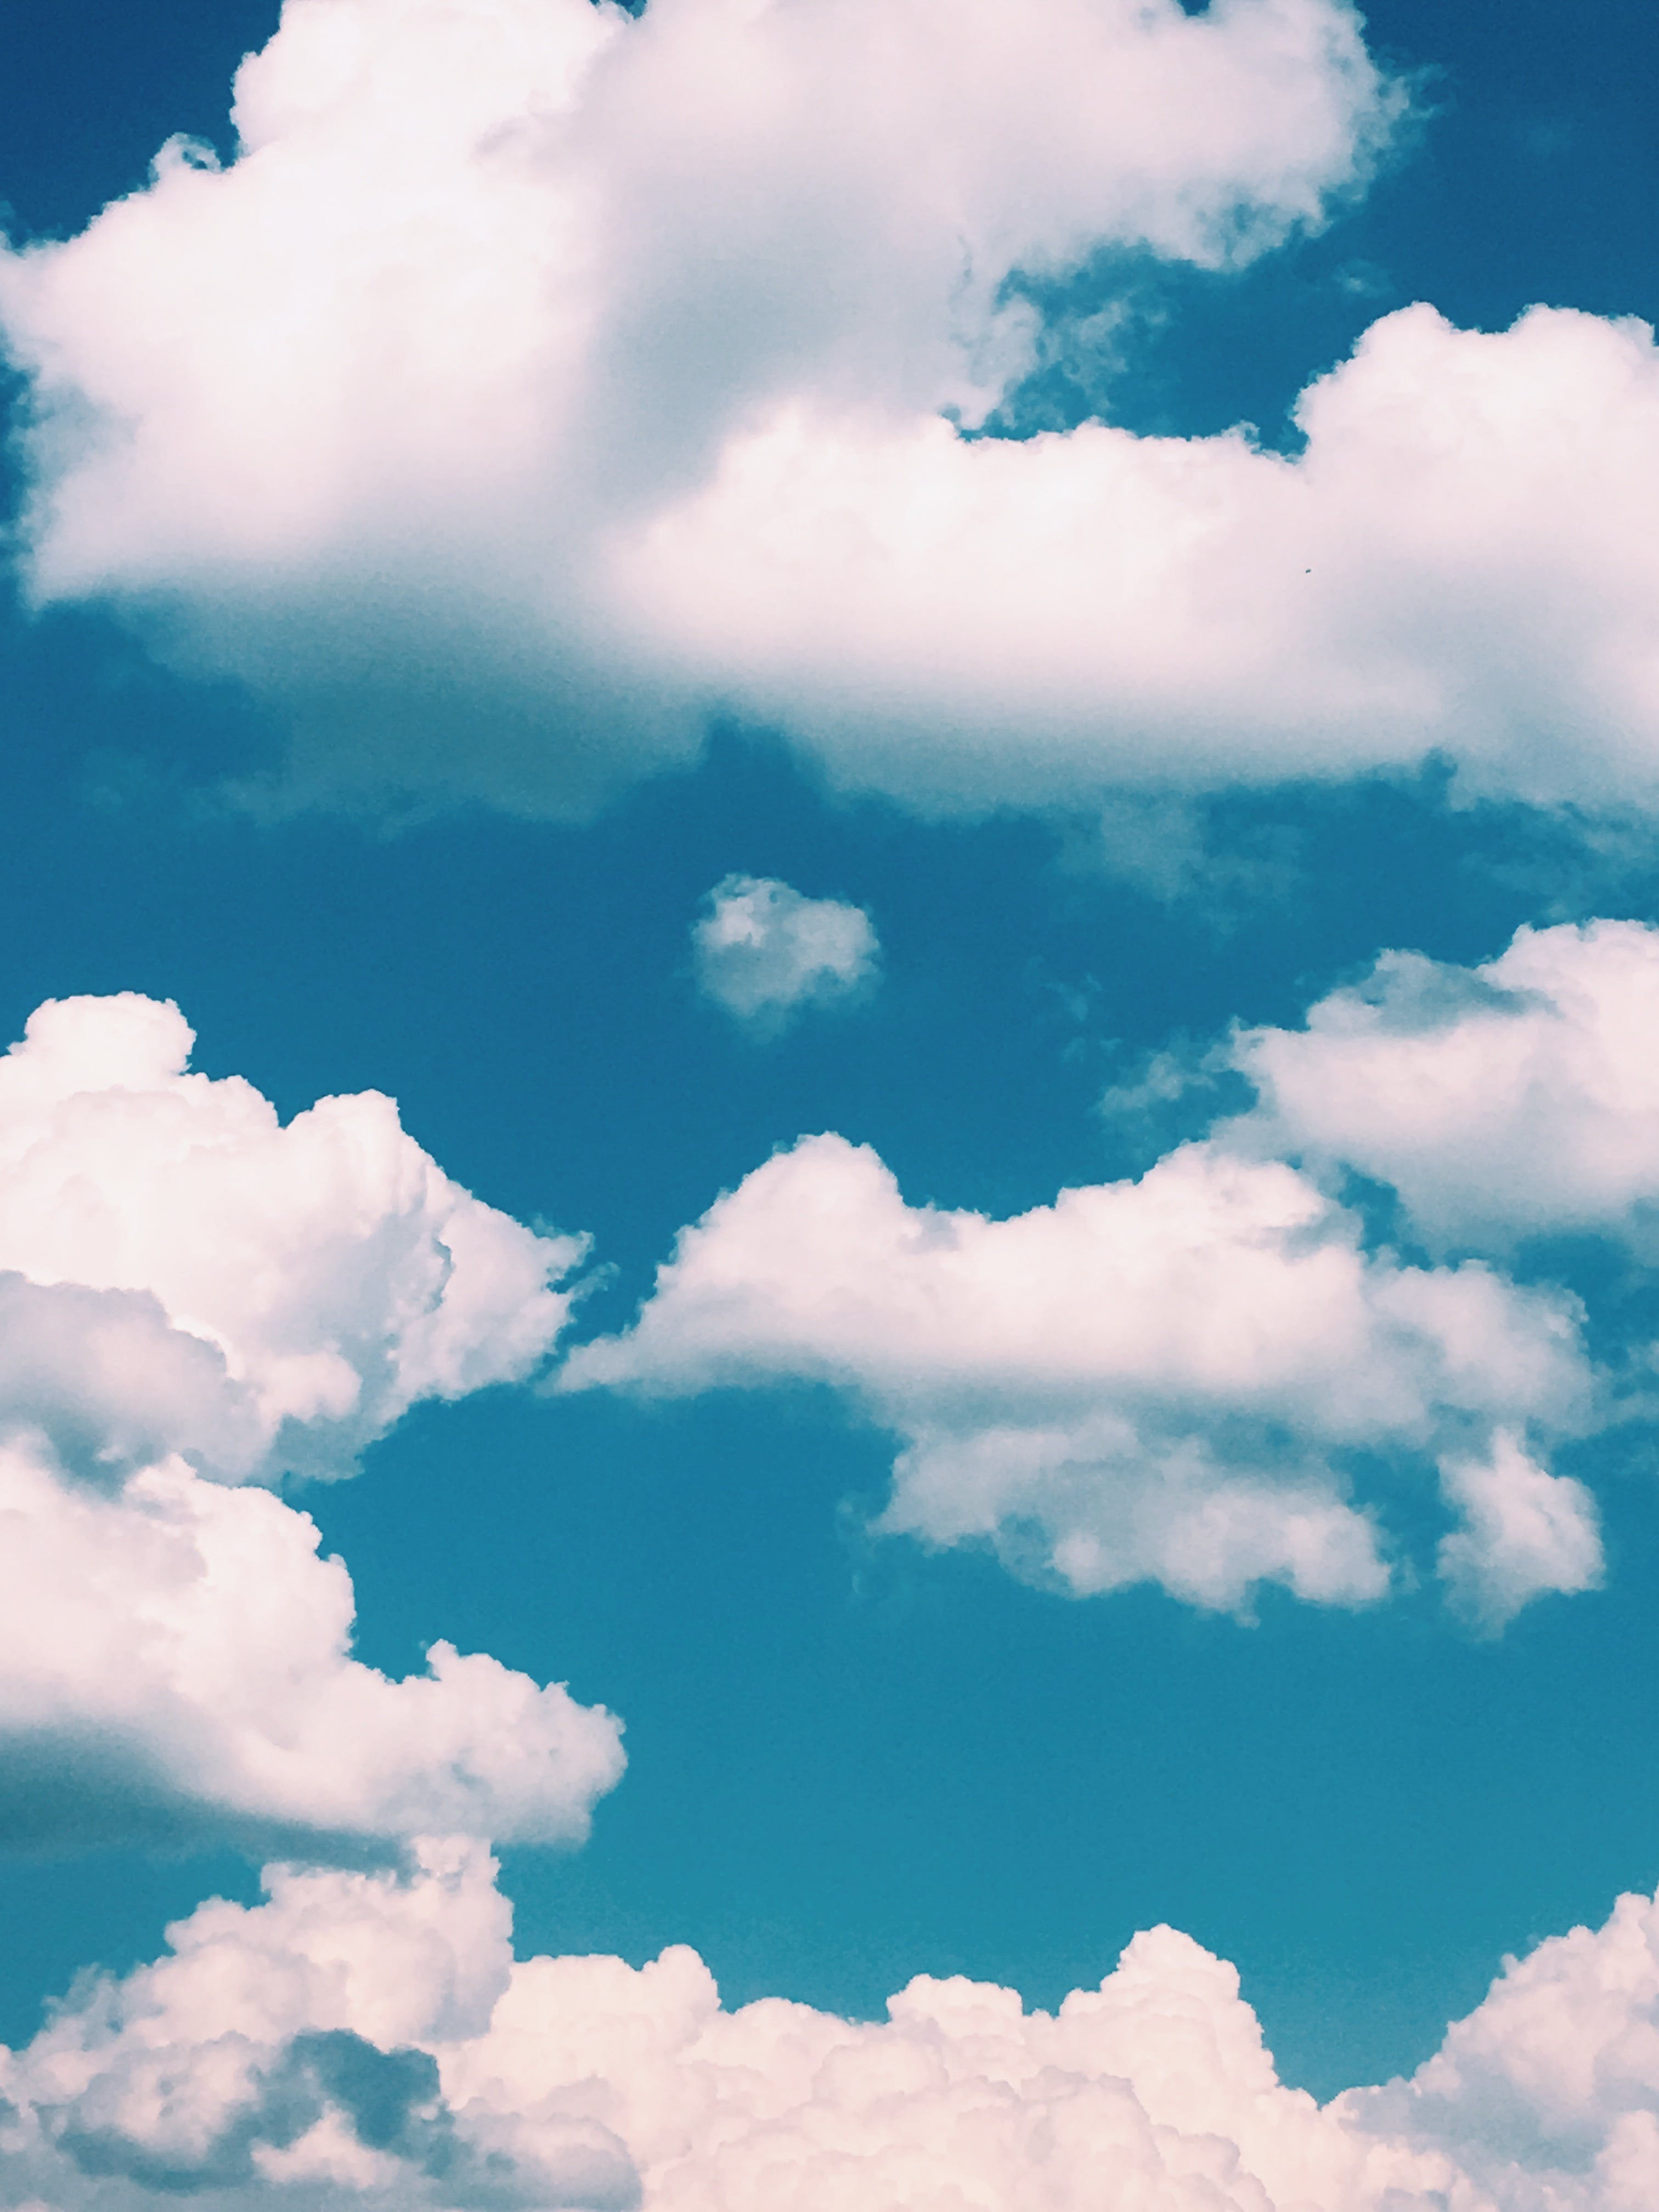 Free stock photo of clouds, summer, colourful, blue sky